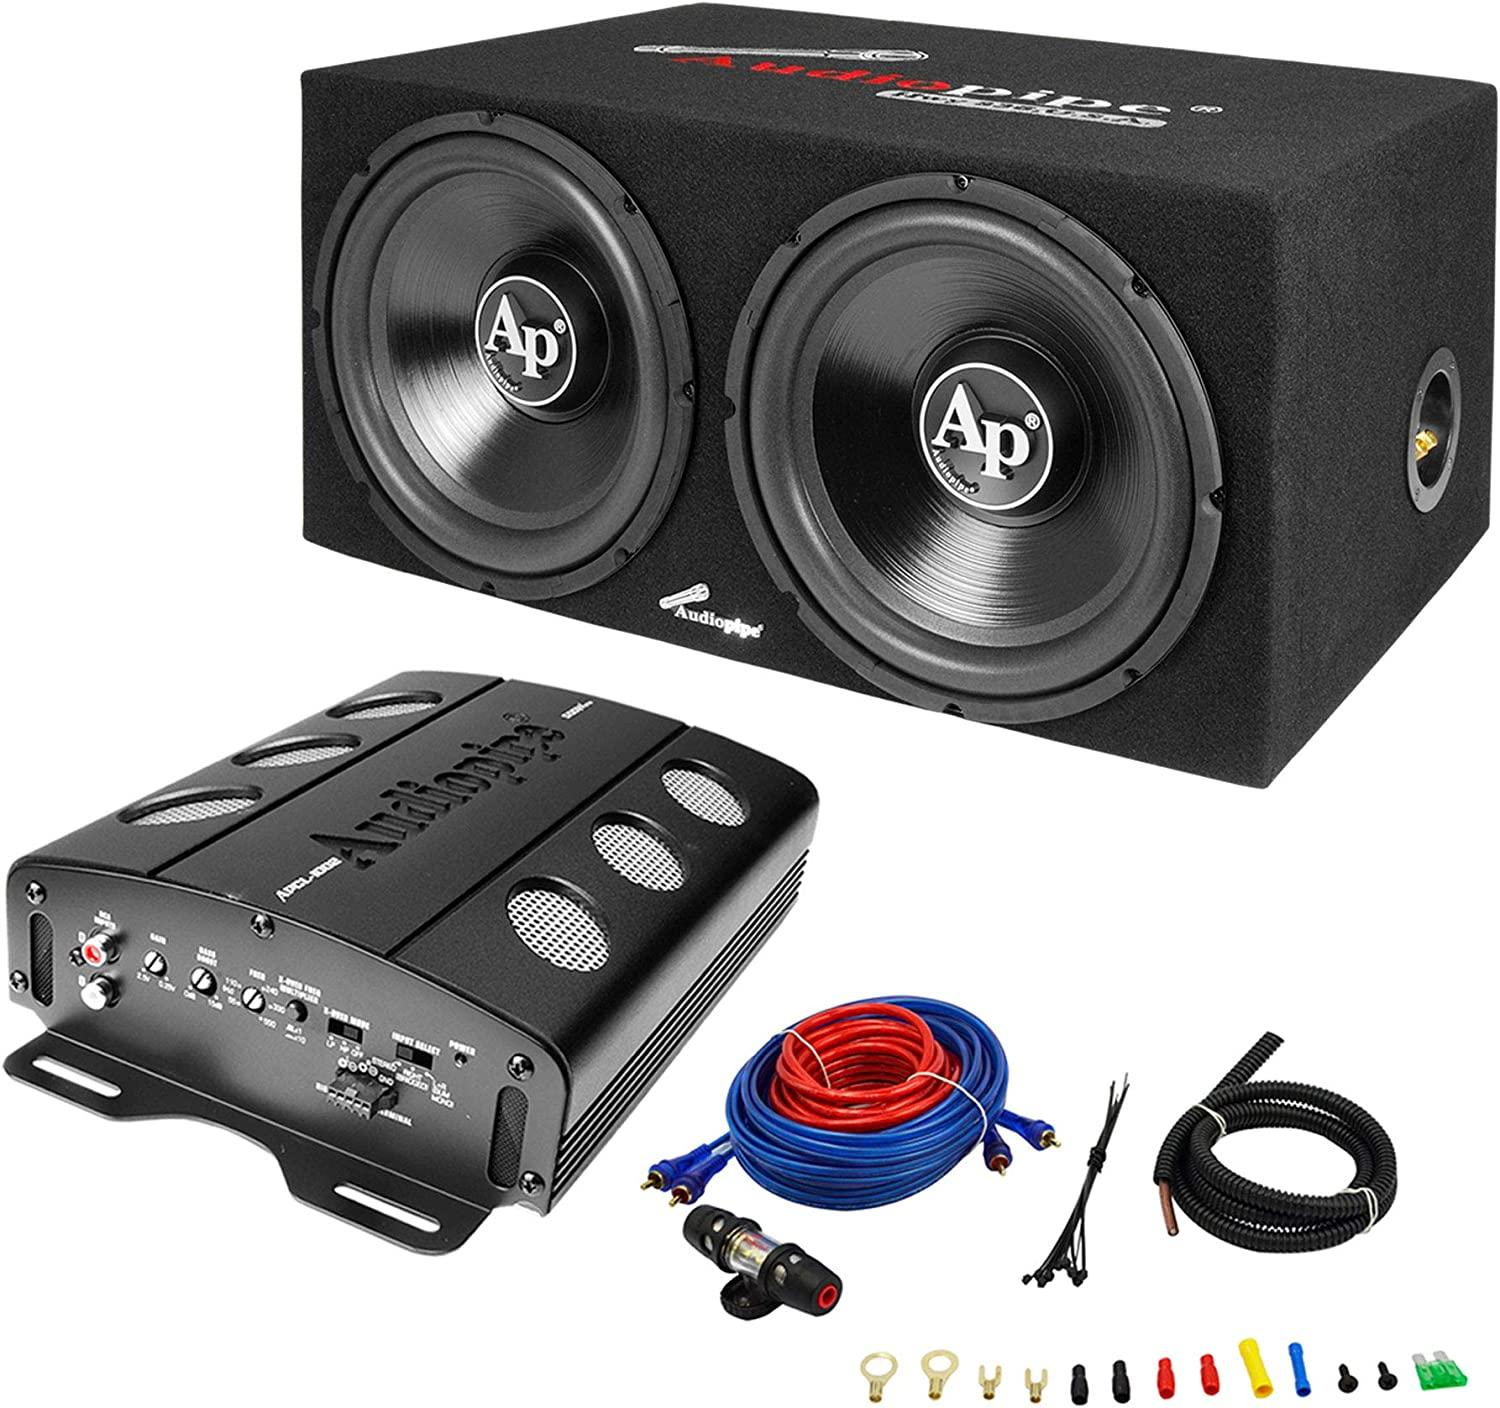 Amazon.com: Audiopipe APSB-1299PP Loaded Dual 12 Subs Amp and Wire Kit Car  Audio PackageAmazon.com